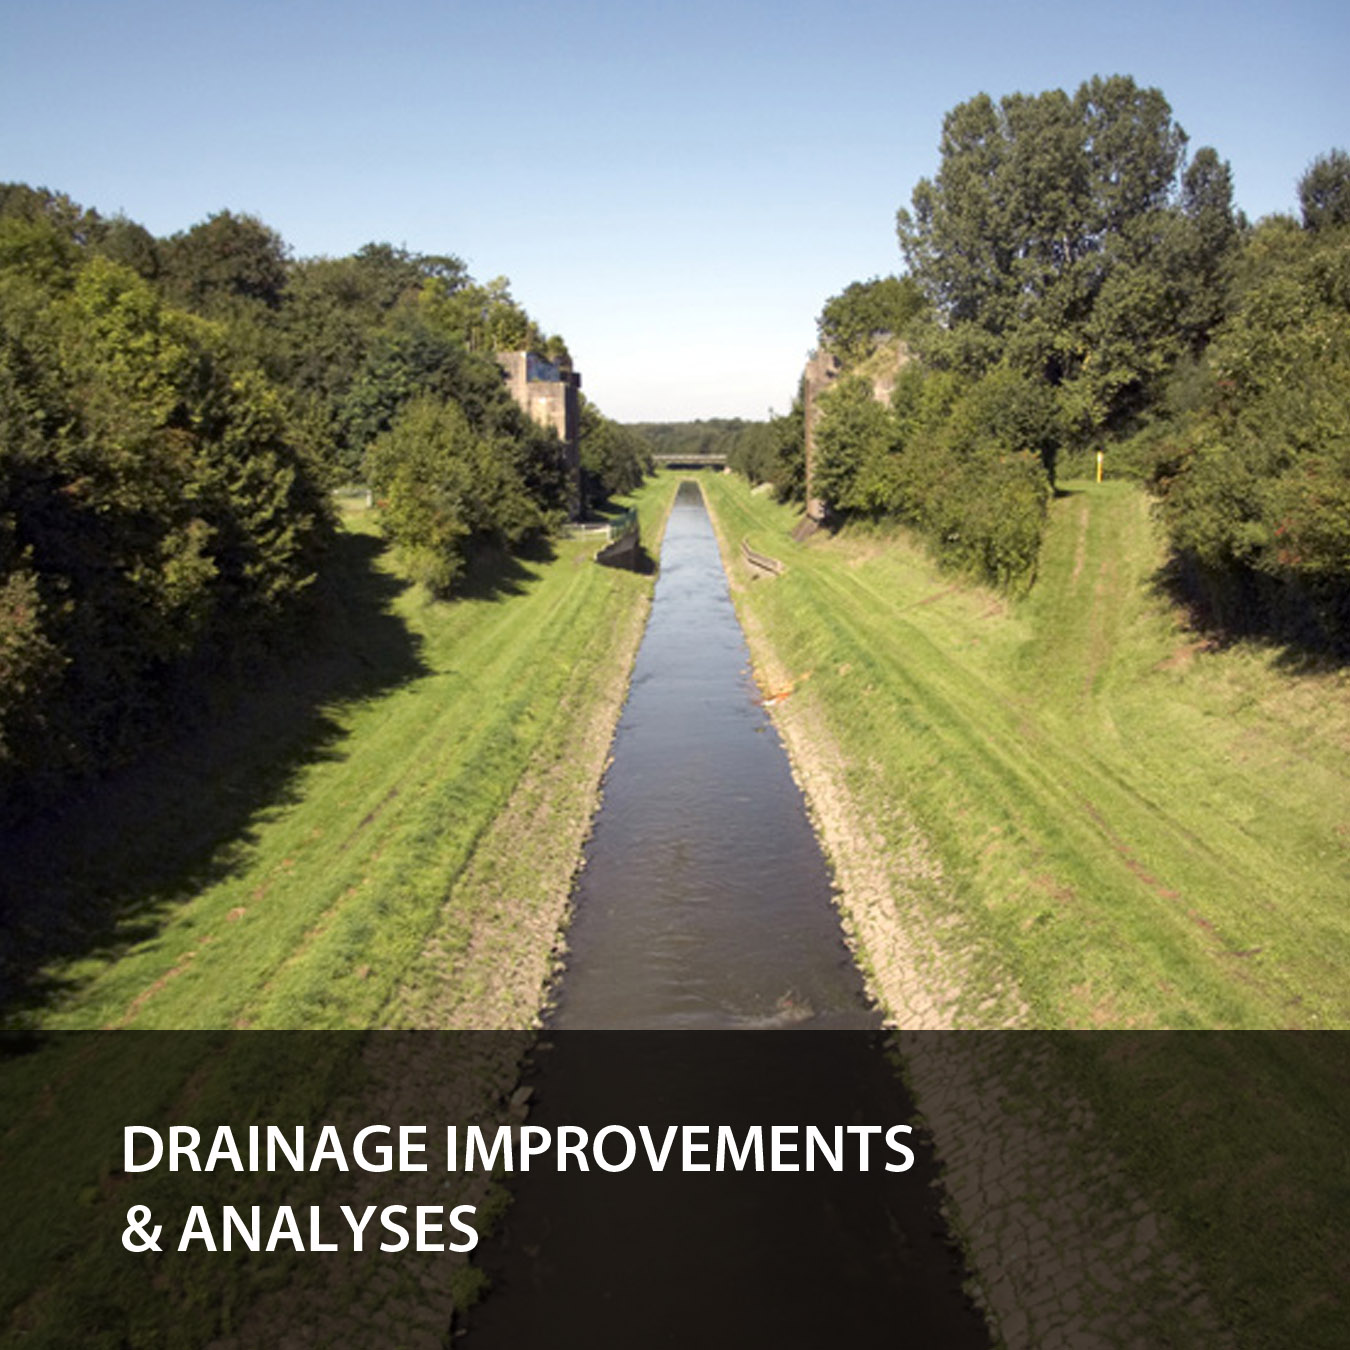 Drainage Improvements & Analyses